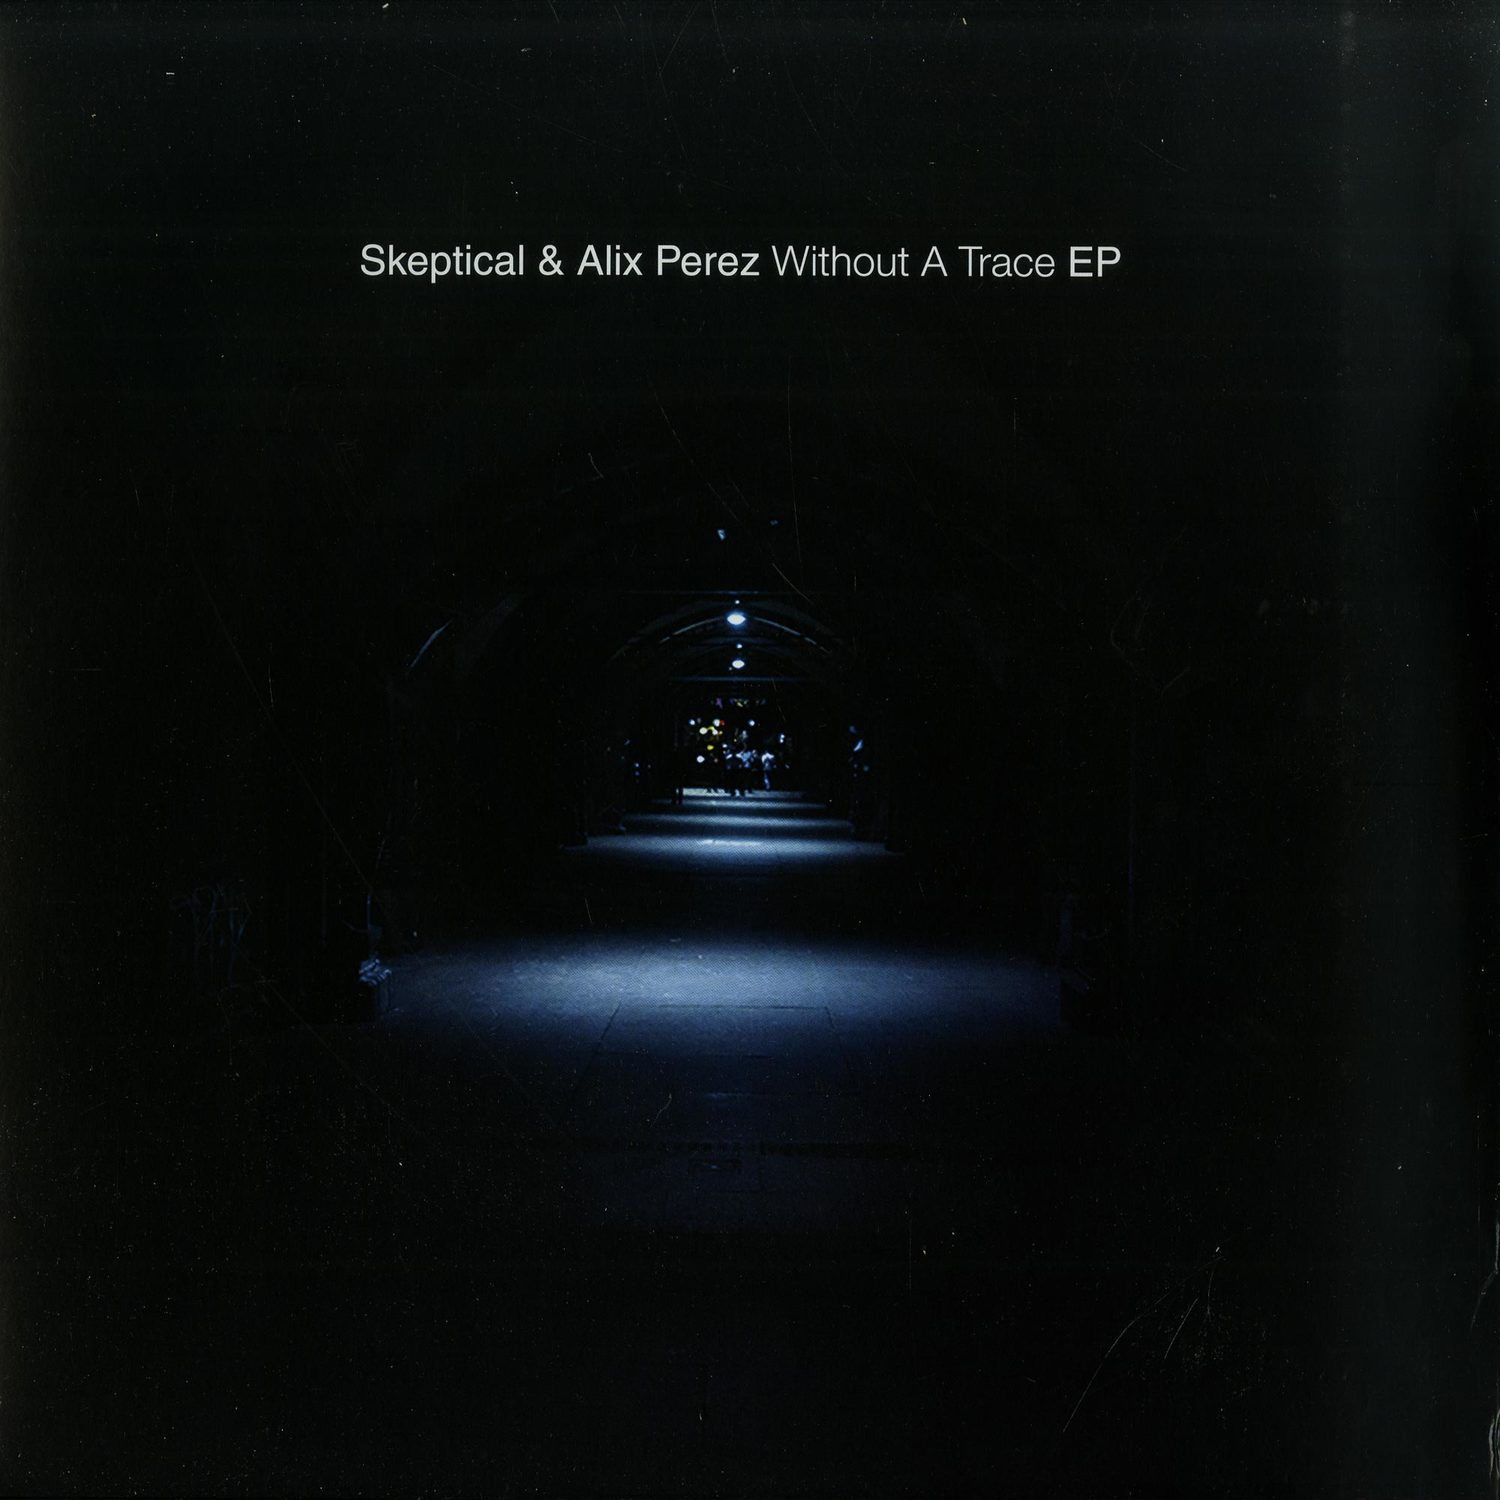 Skeptical & Alix Perez - WITHOUT A TRACE EP